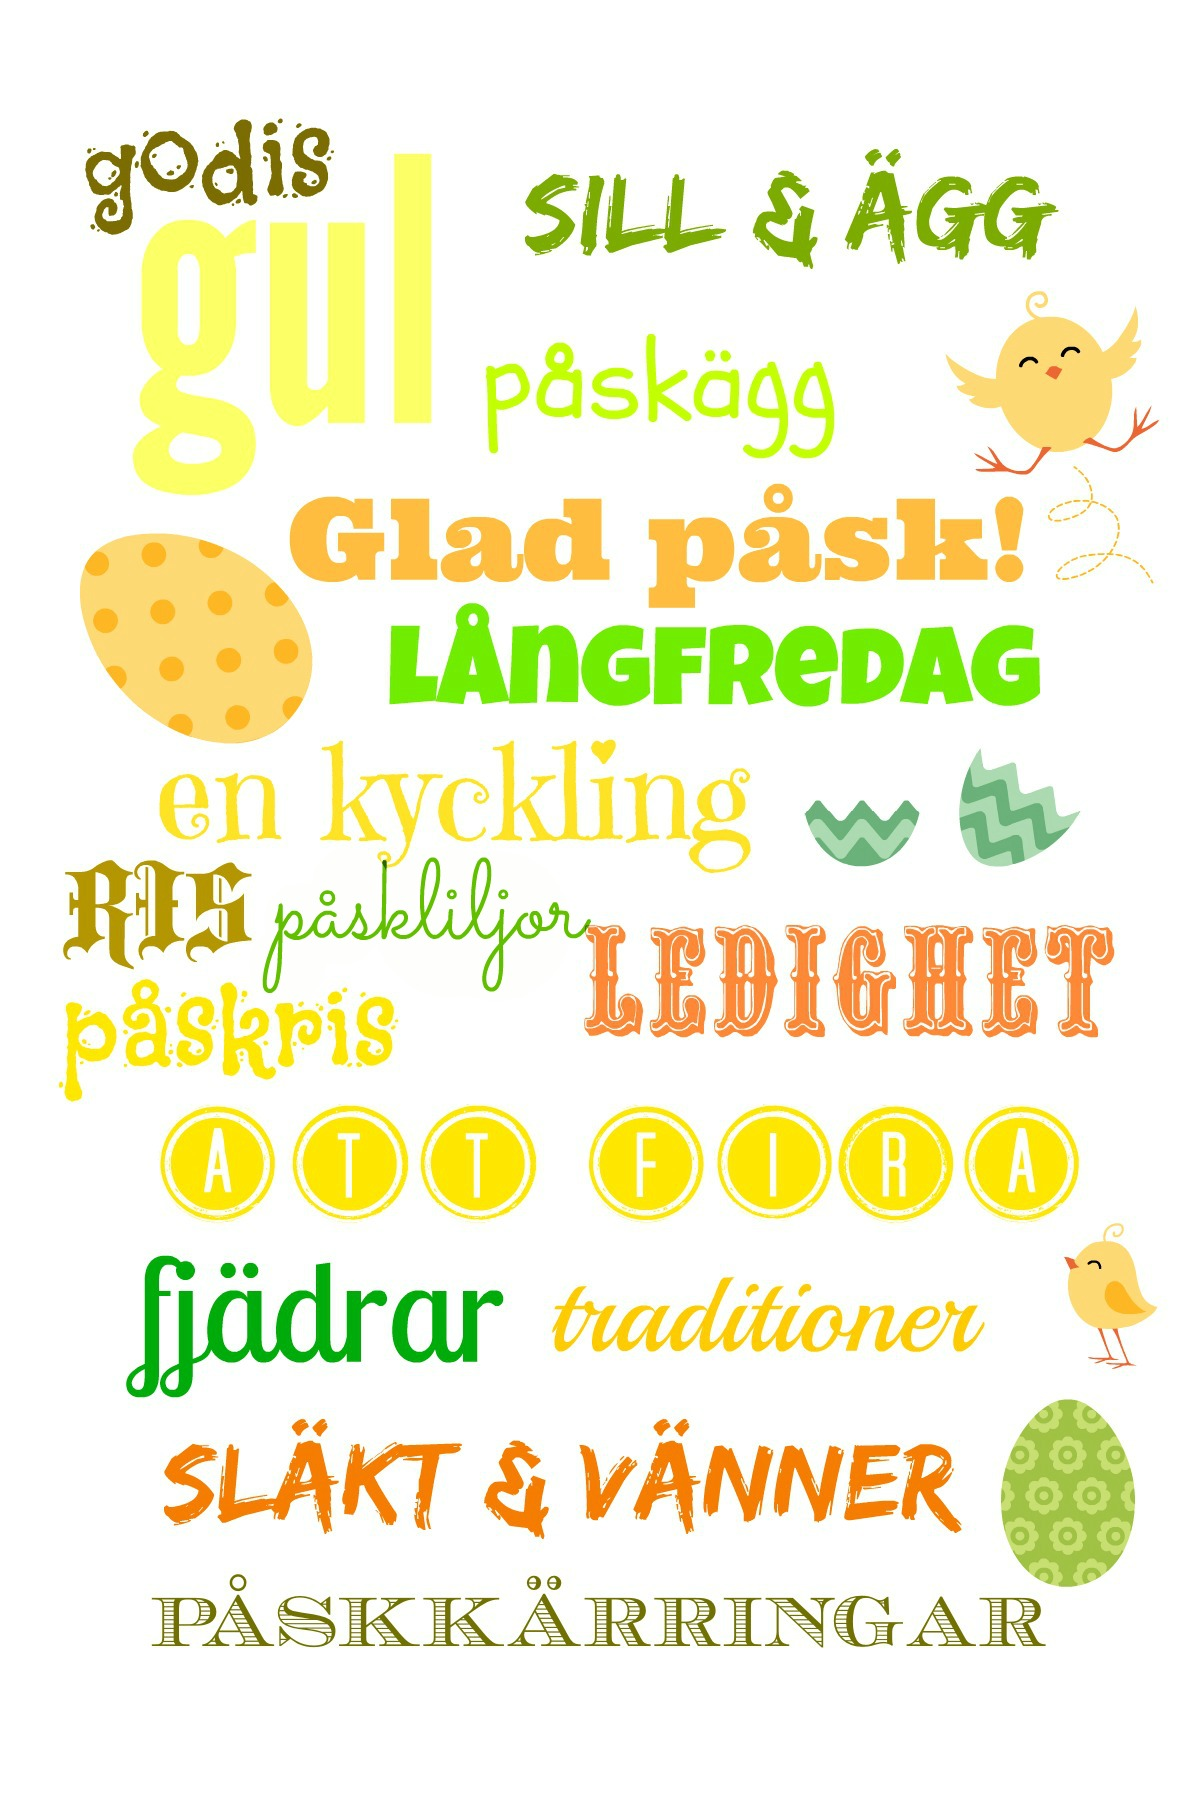 miniposter Swedish vocabulary related to Easter